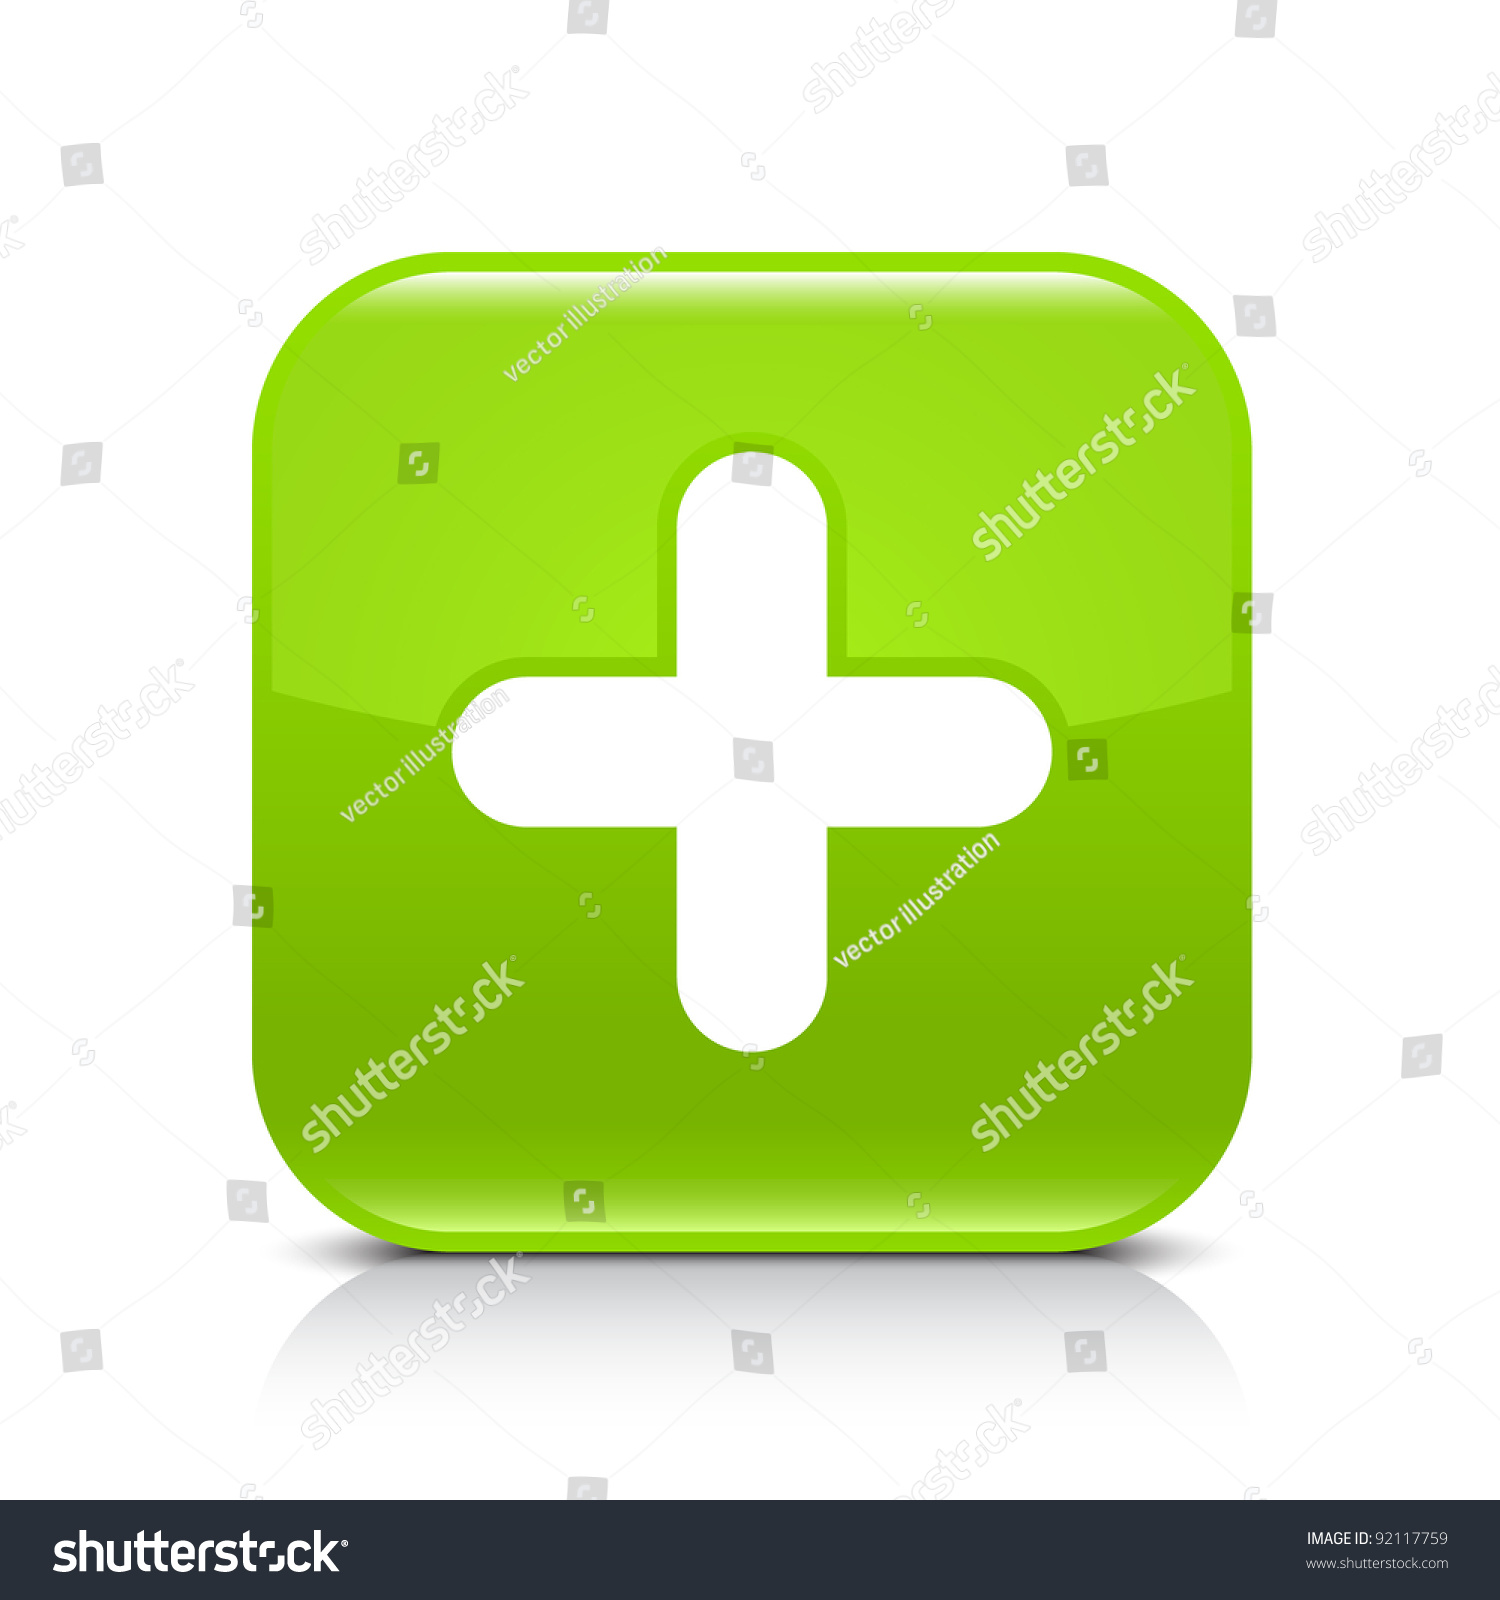 Green Glossy Web Button With Plus Sign Rounded Square